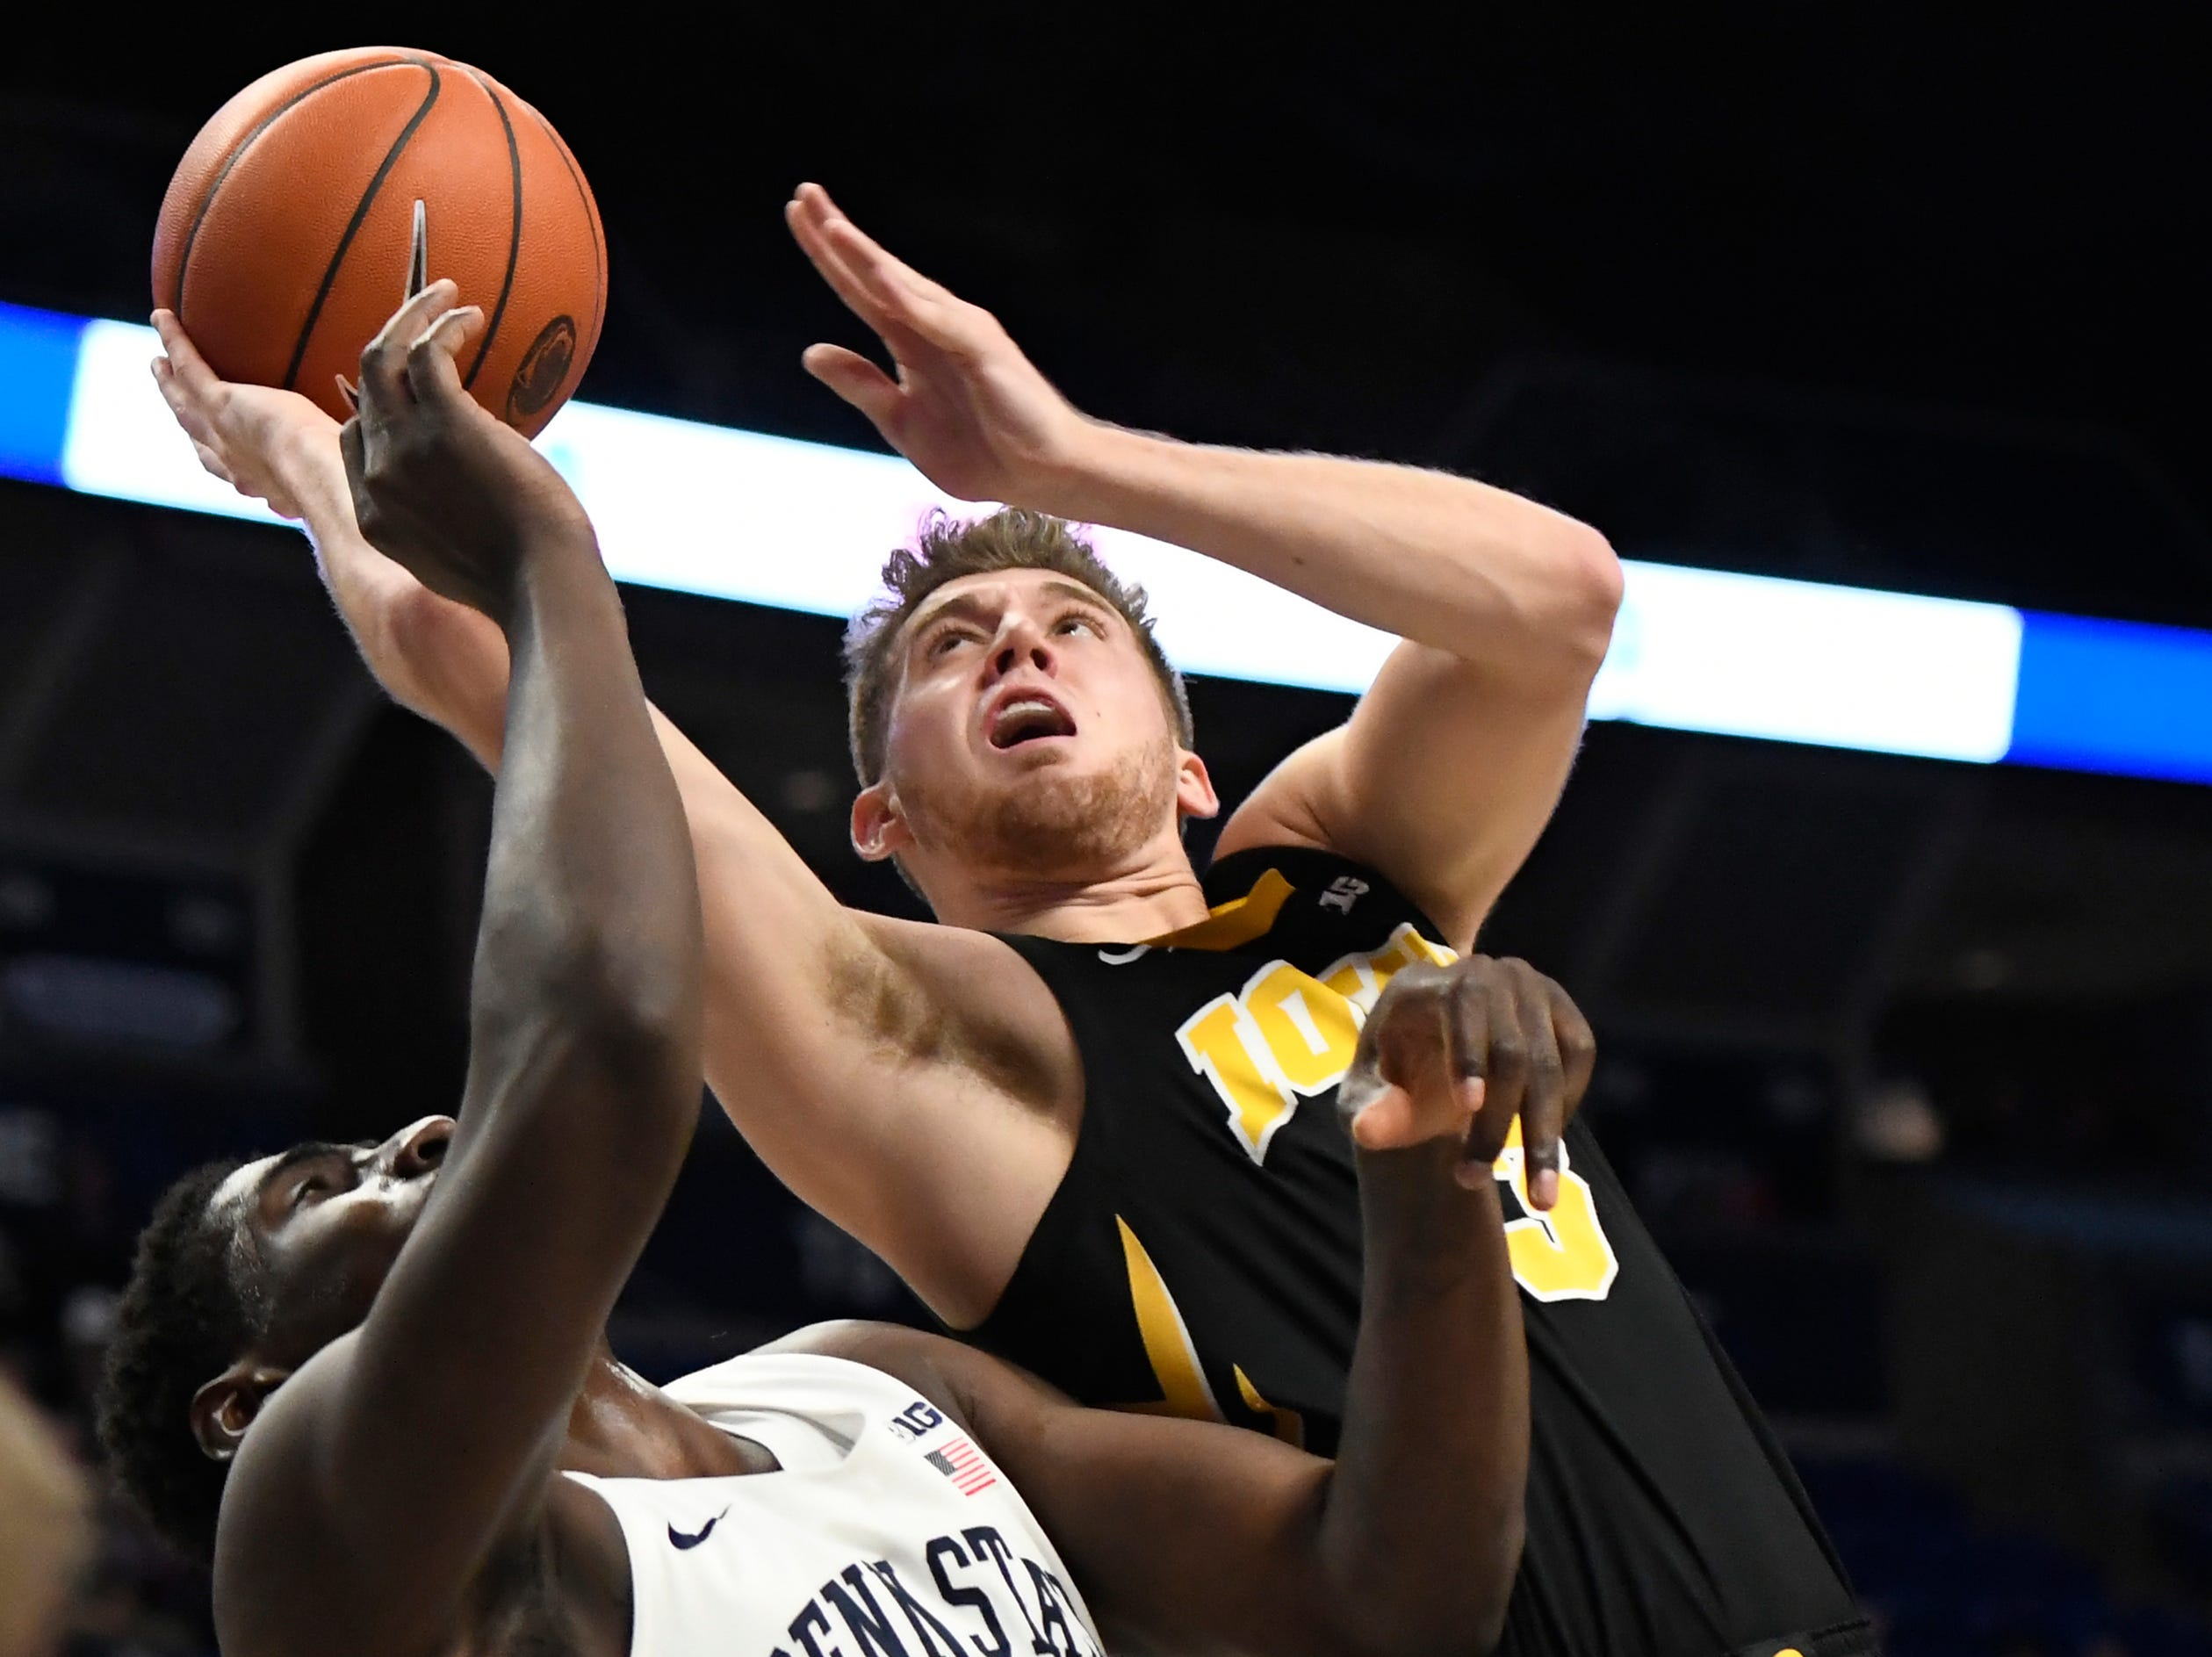 Iowa guard Jordan Bohannon (3) takes a shot over Penn State forward Mike Watkins (24) during the first half of an NCAA college basketball game Wednesday, Jan. 16, 2019, in State College, Pa.